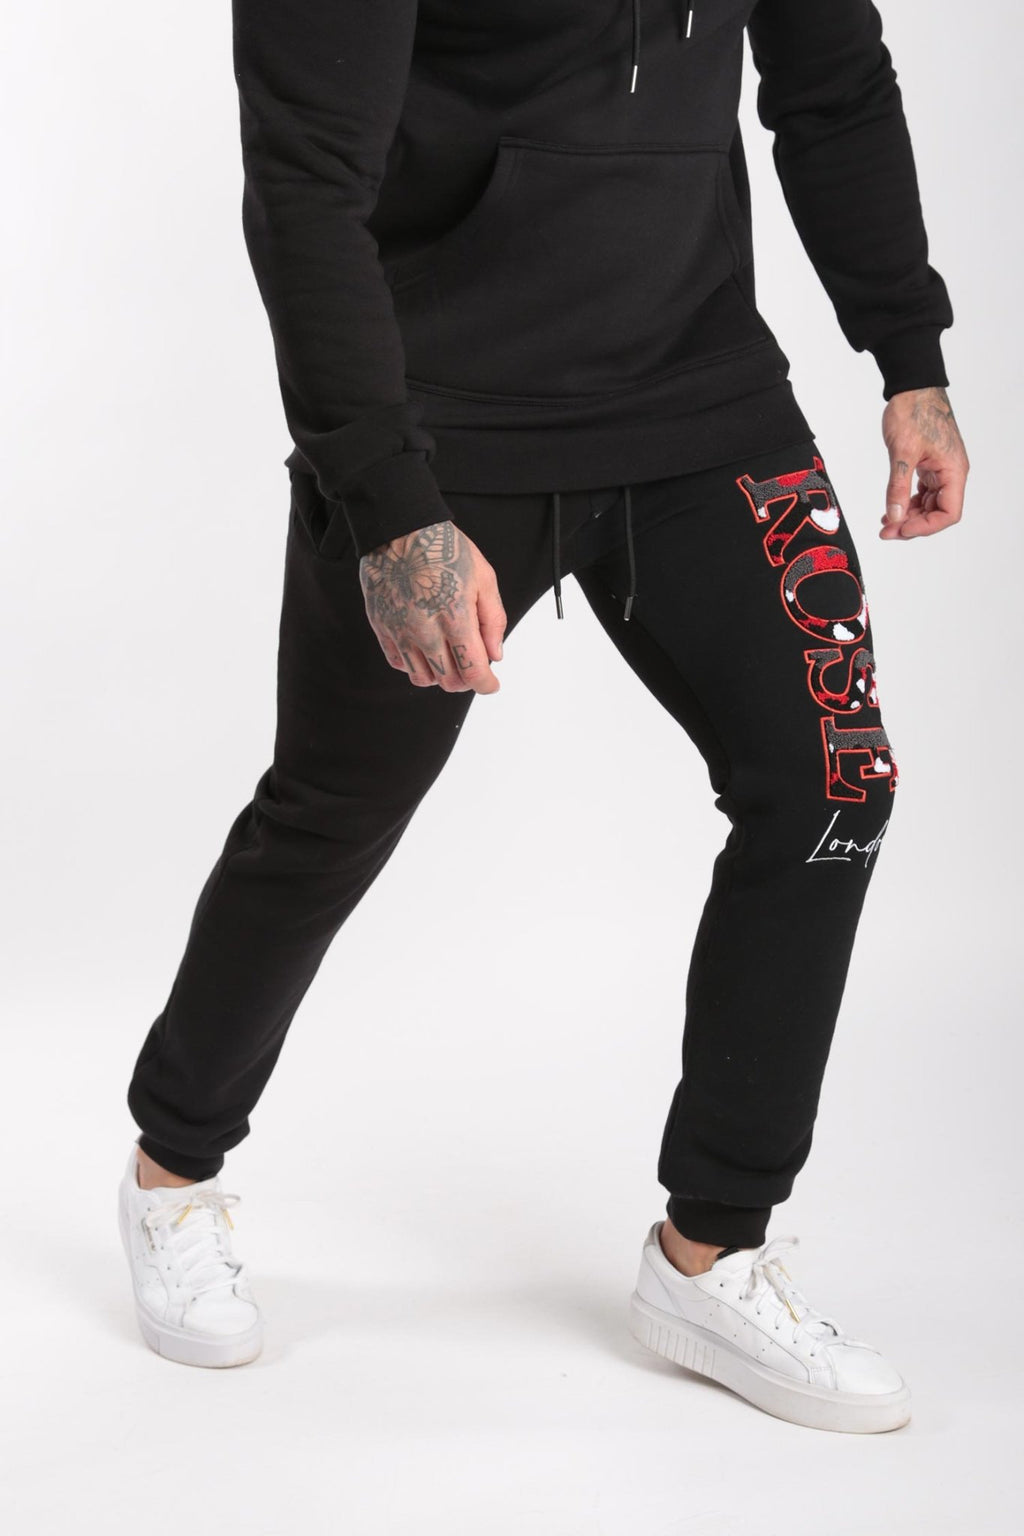 Rose London Chenille Embroidery Jogger Black - Rose London